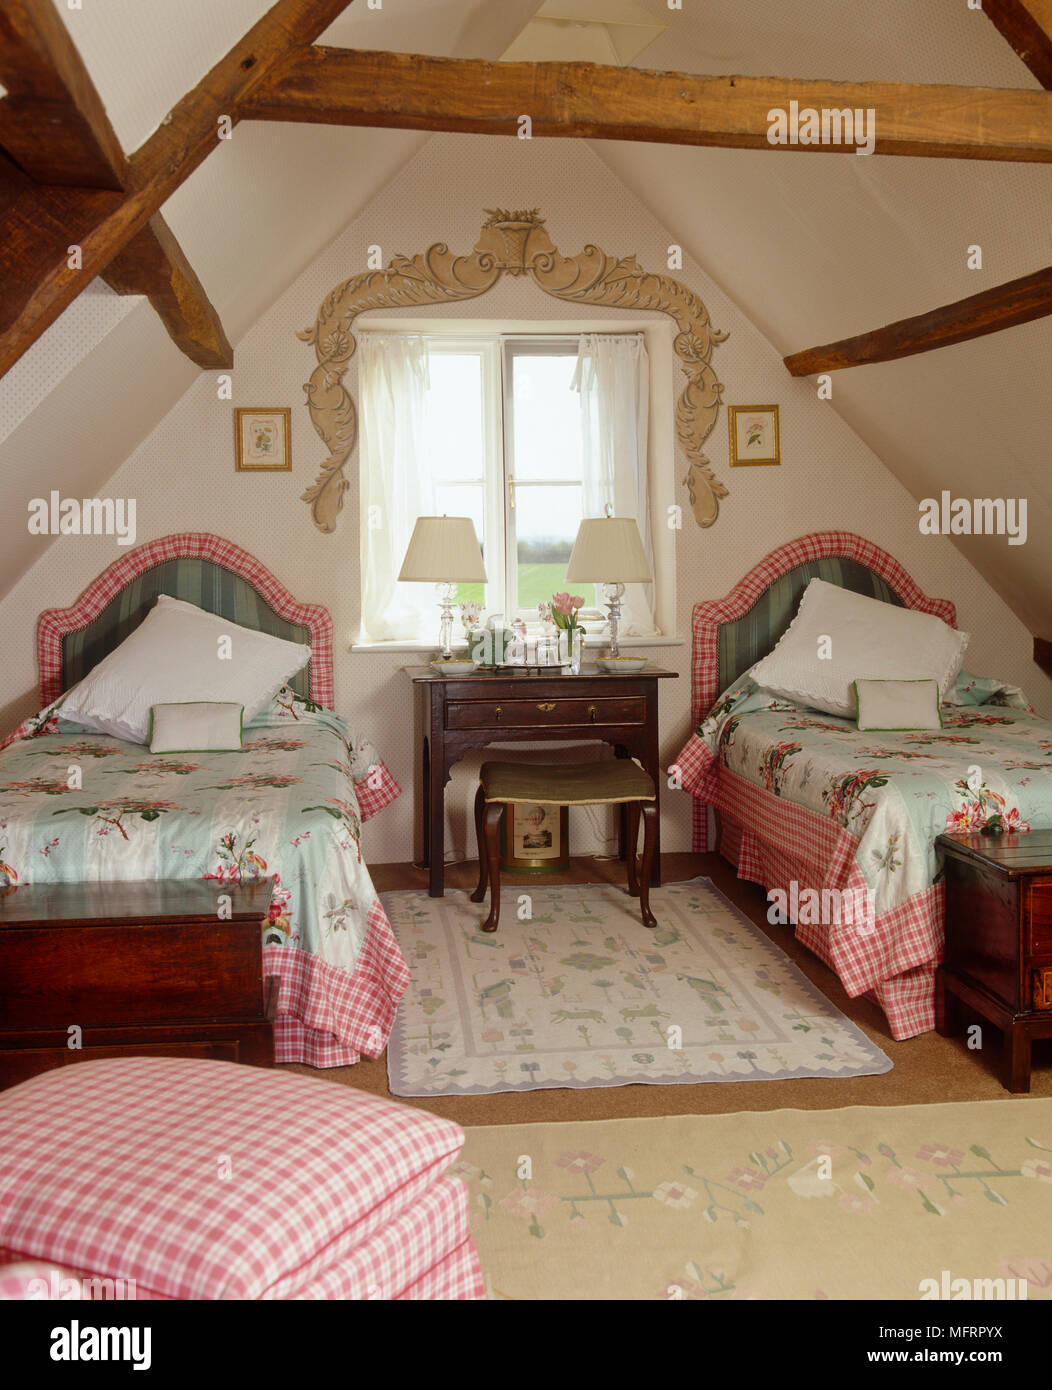 Country Style Bedroom With Slanted Ceiling And Twin Beds Stock Photo Alamy